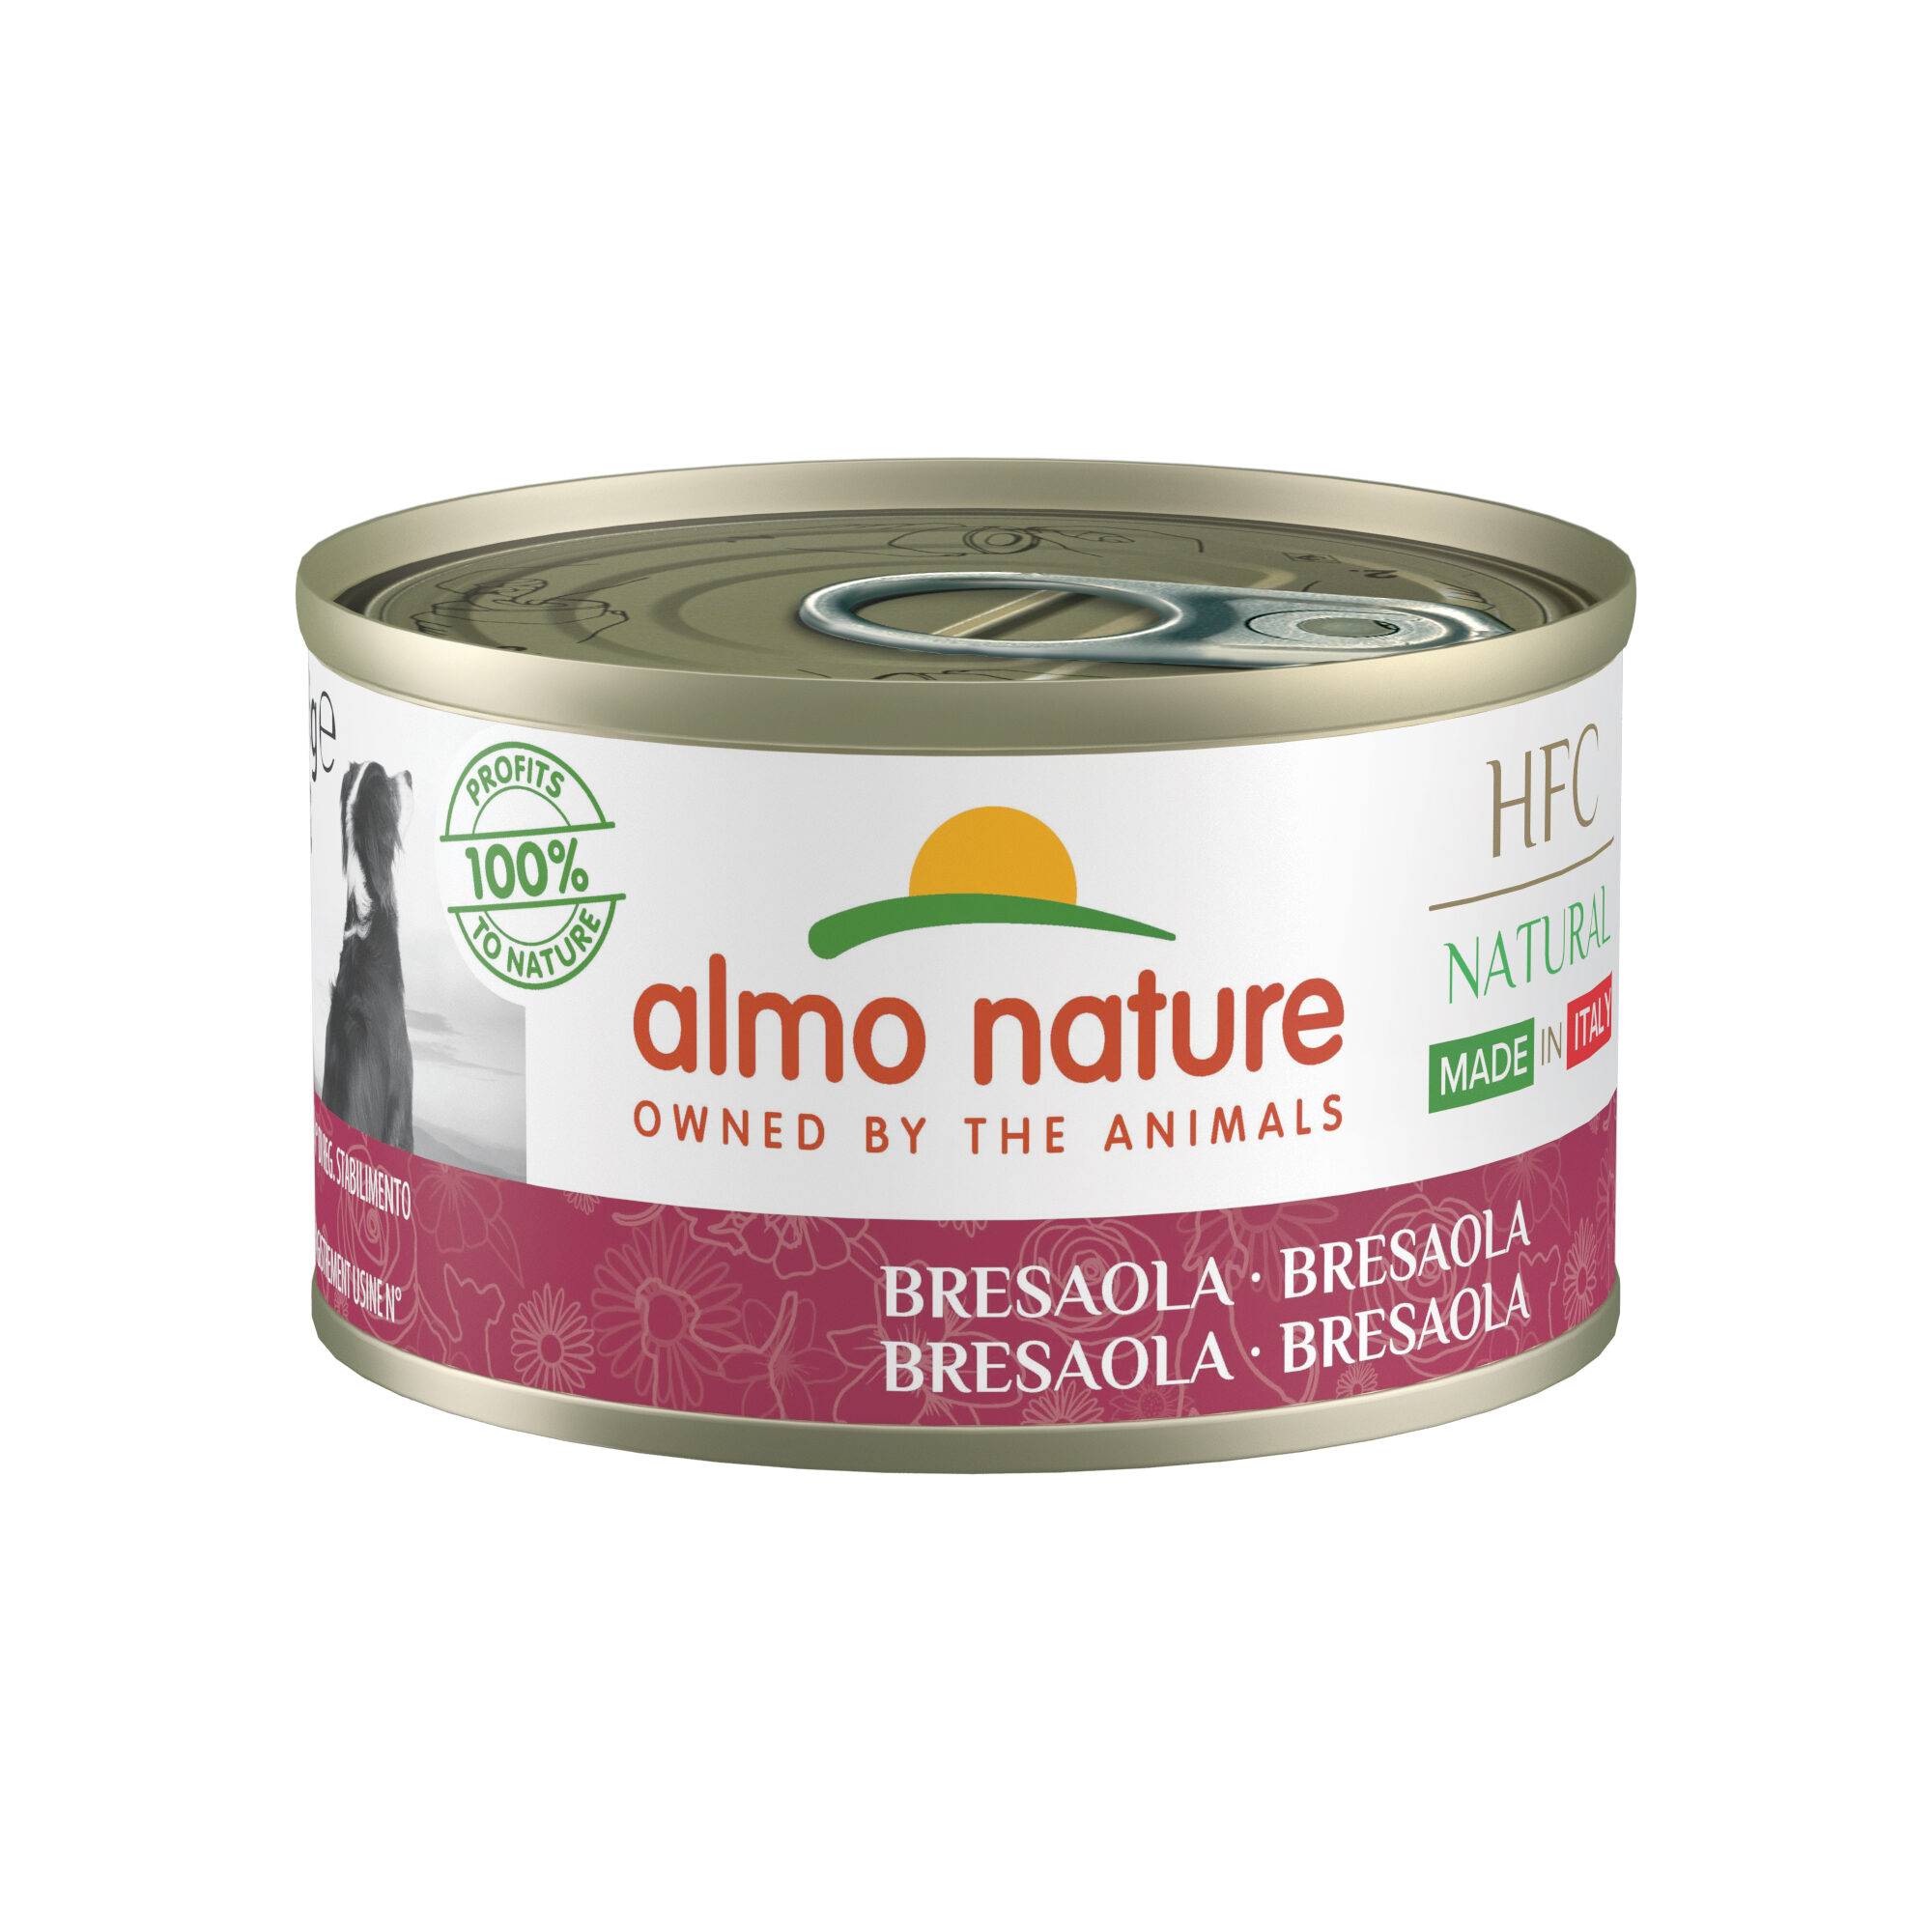 Almo Nature HFC Natural Made in Italy Hundefutter - Bresaola